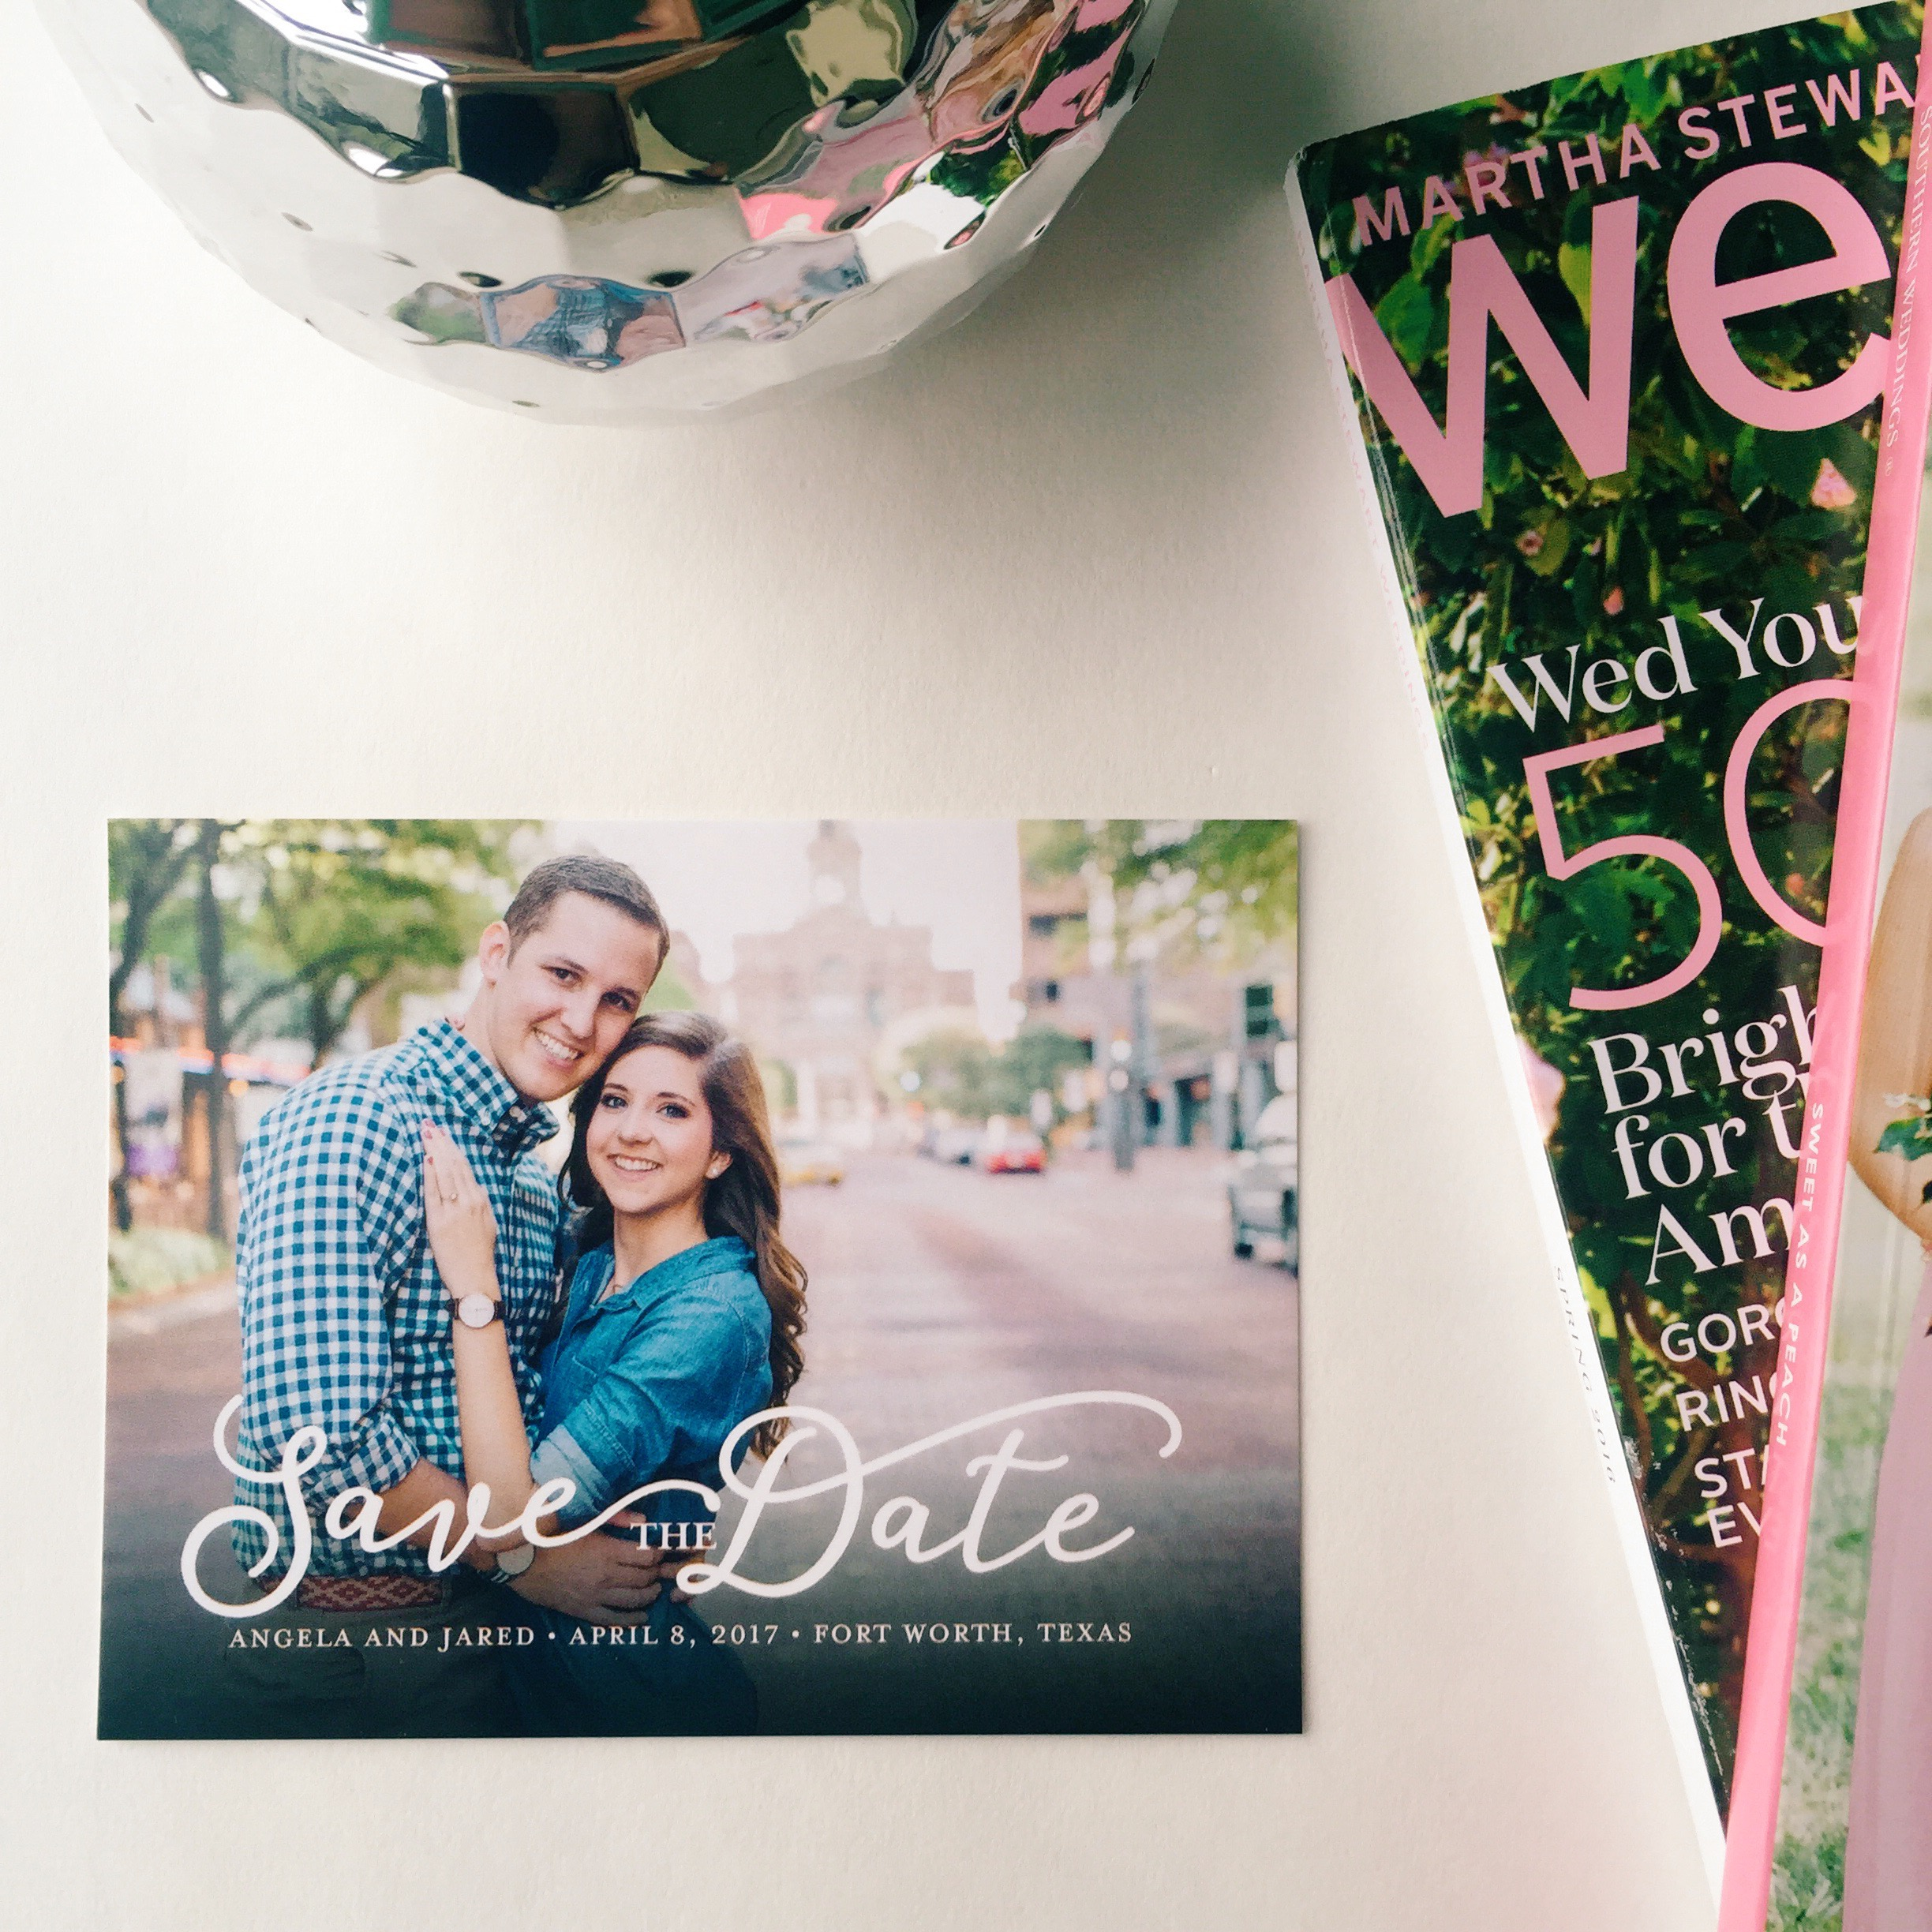 Knowing when to send your save the date cards and questions to ask your wedding photographer are crucial for any wedding preparation. Without them, the wedding invitations may not get sent out until too late, and some people who would have loved to have been at your wedding will have already made.